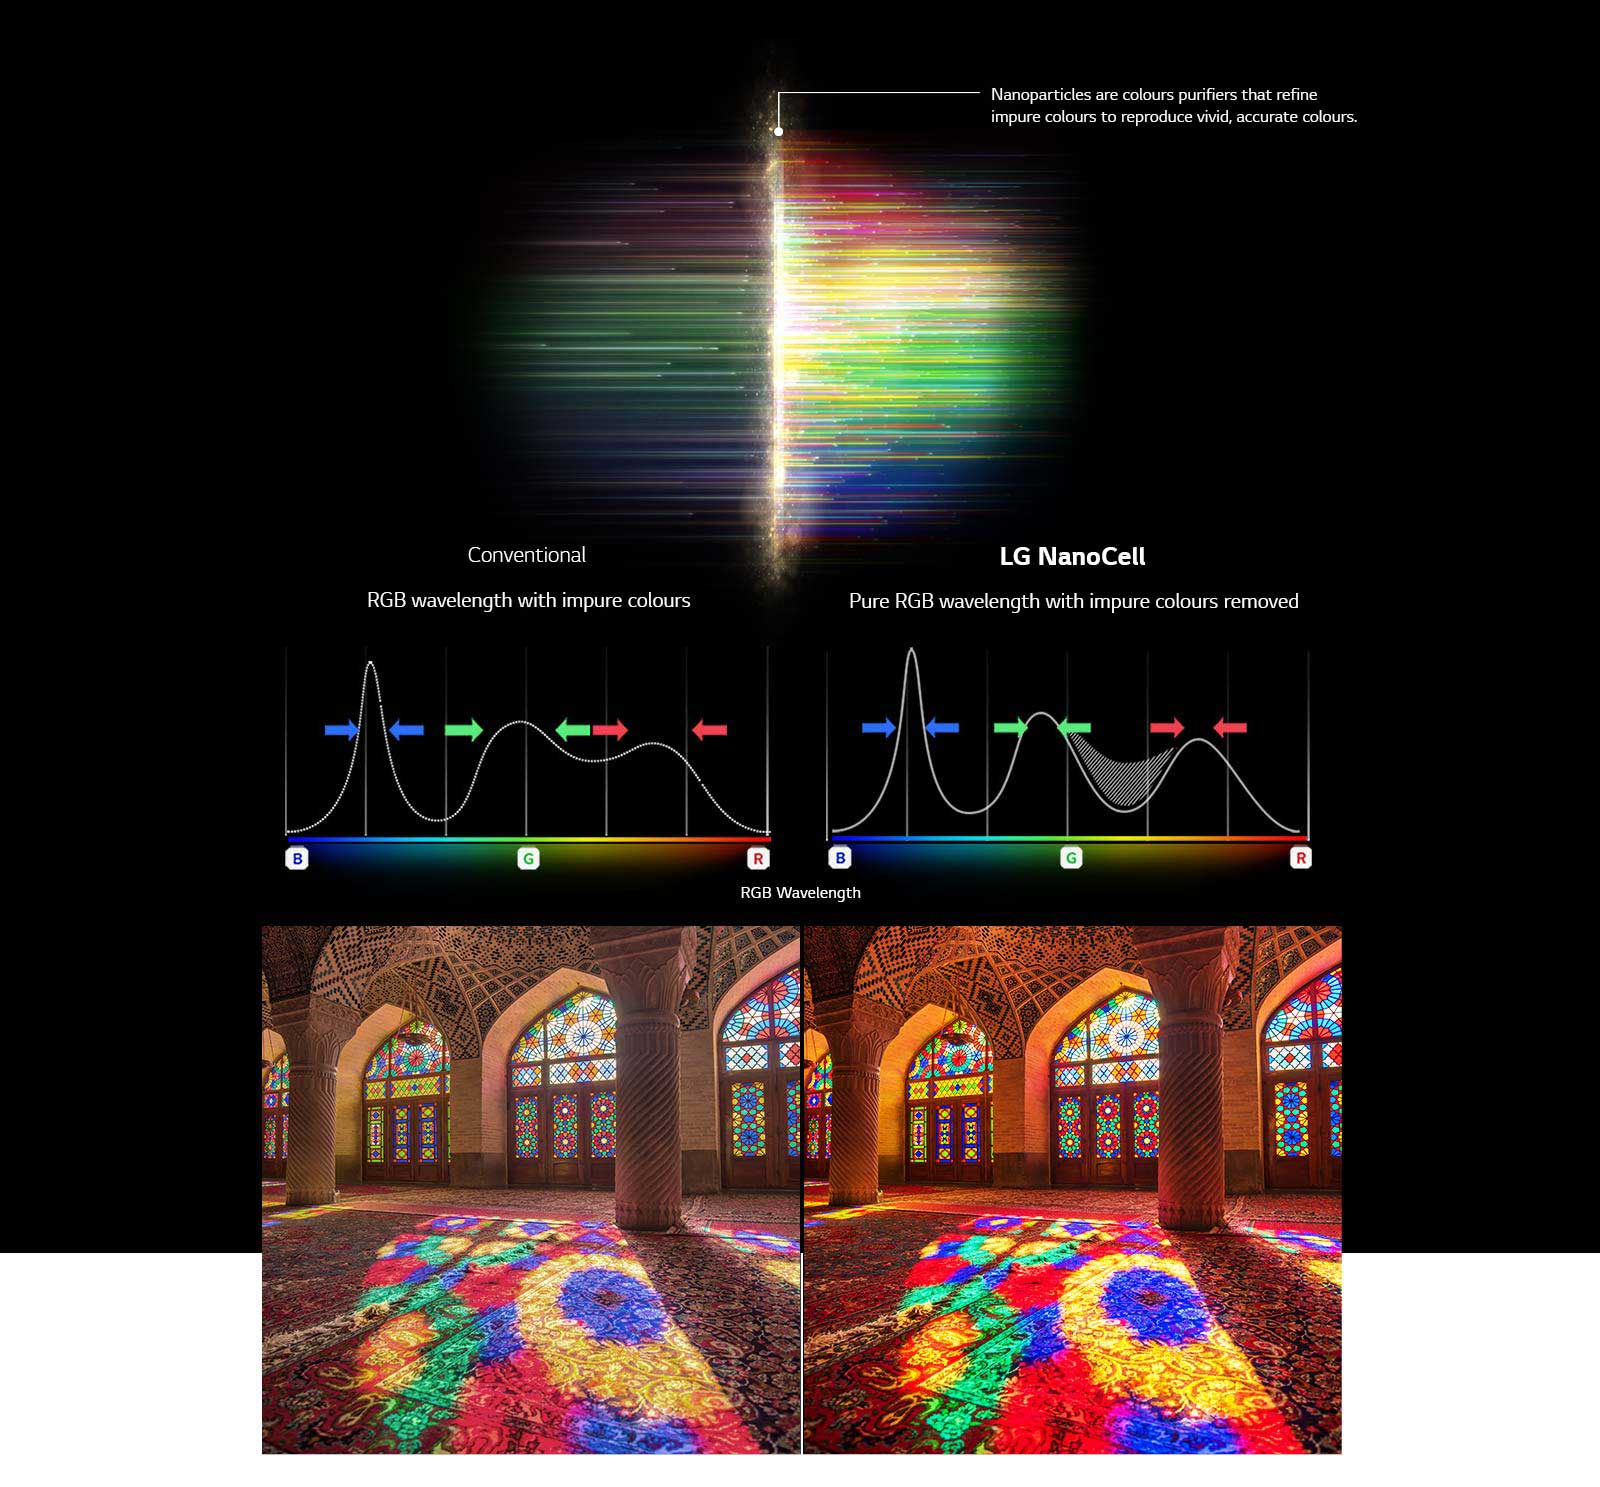 The RGB spectrum graph that showing filter out dull colours and images comparing Colour Purity between Conventional and NanoCell Tech